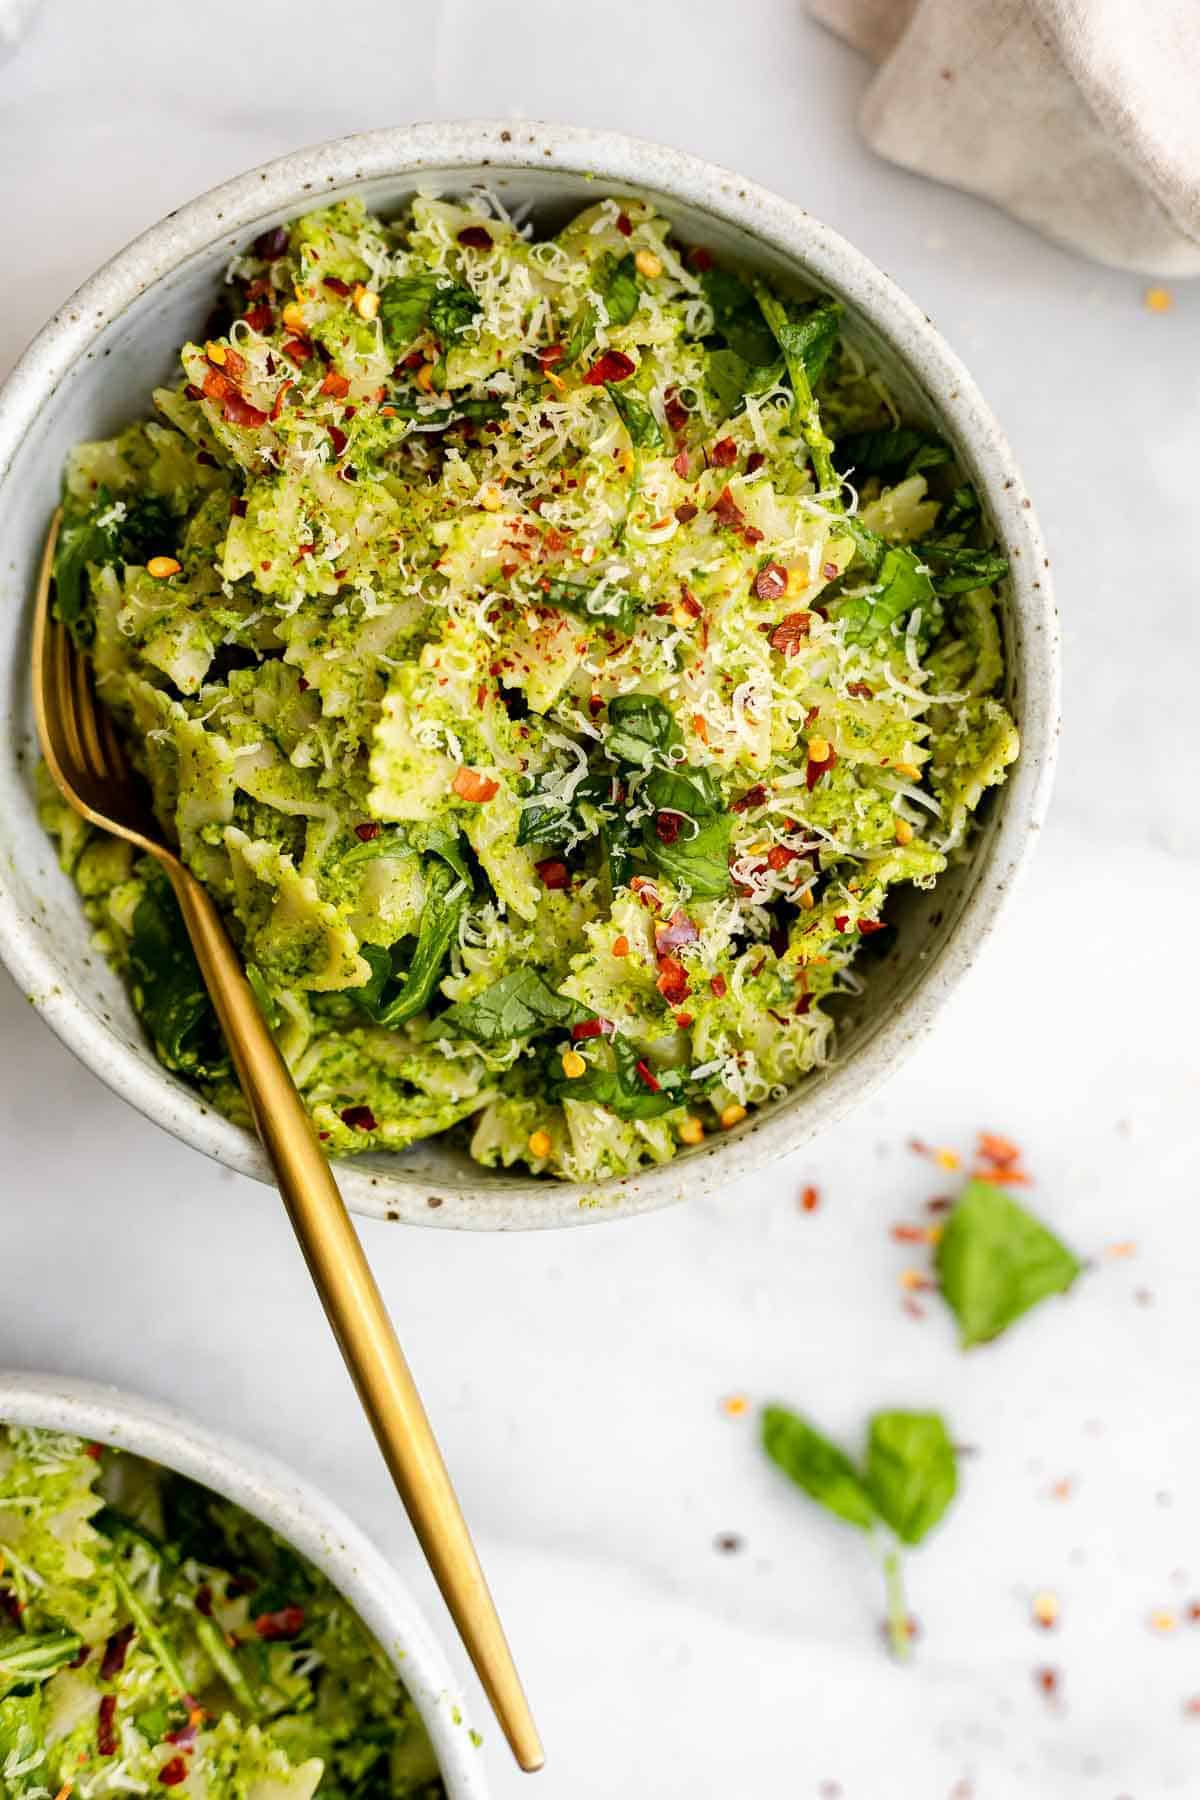 Up close view of the broccoli pesto with a gold fork.